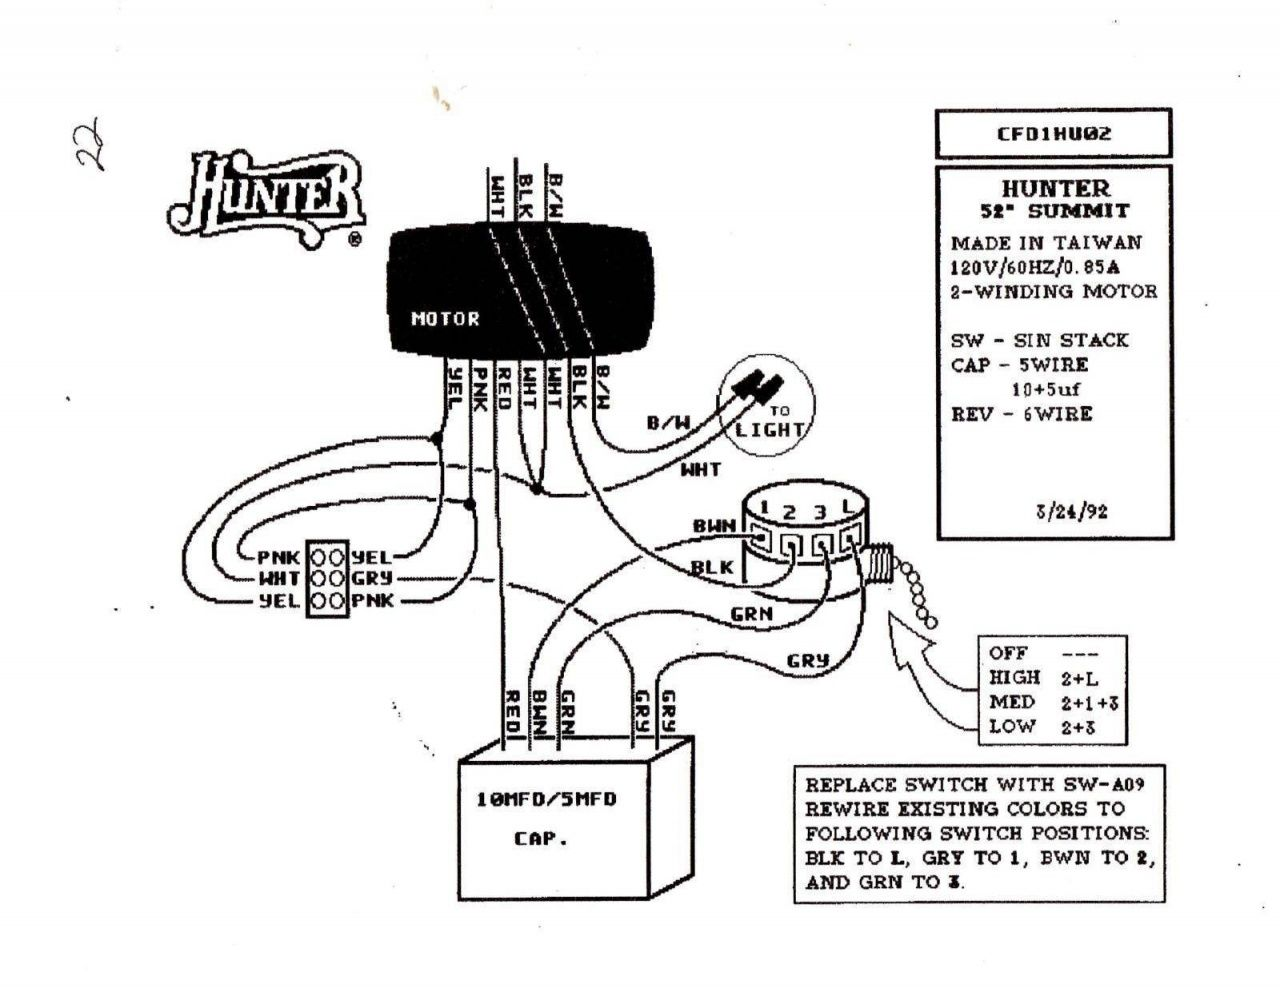 Hunter Ceiling Fan Switch Wiring Diagram In